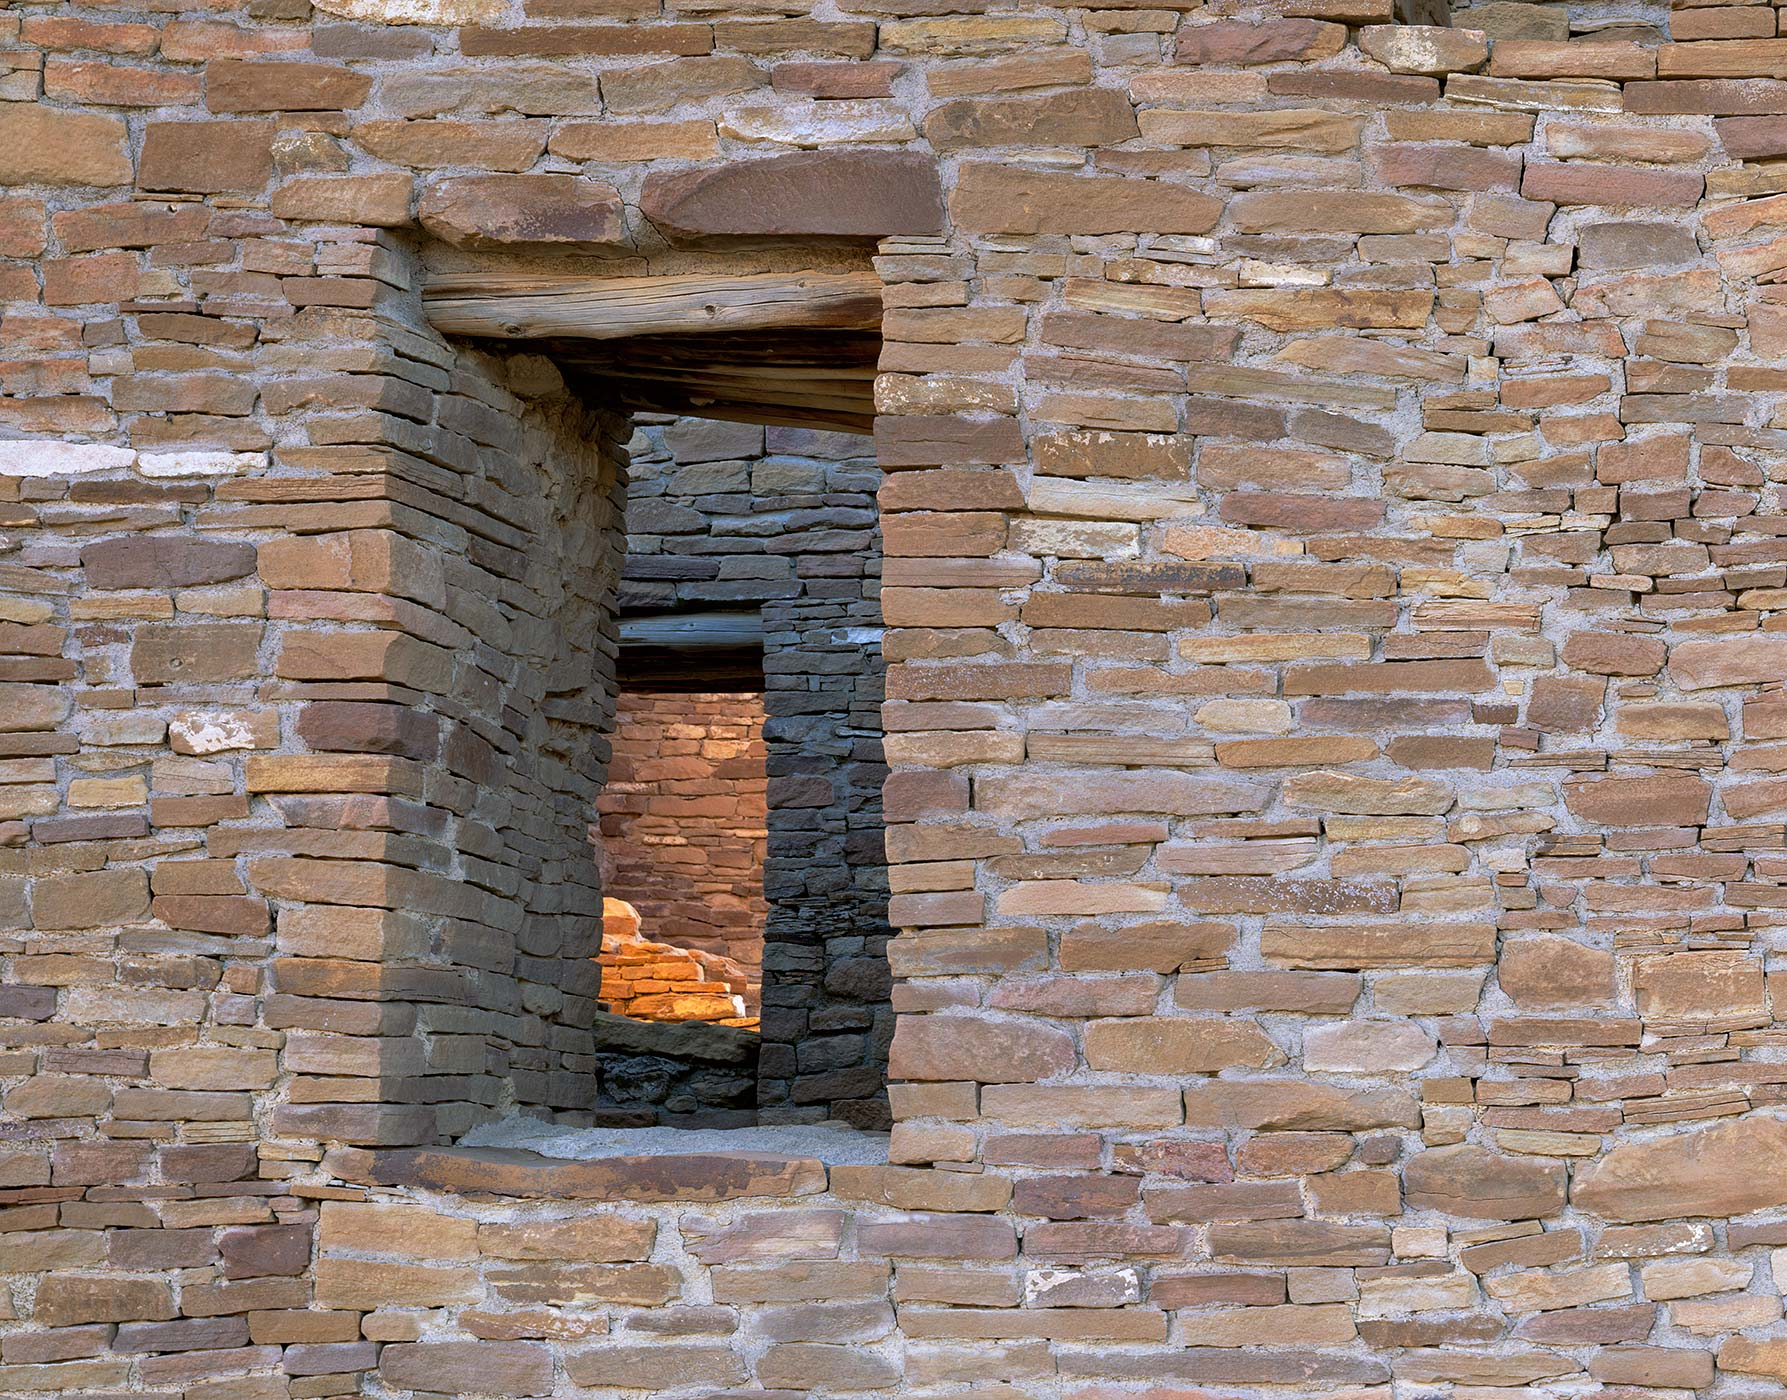 506Pueblo del arroyo Doorways, Chaco Culture National Park, New Mexico